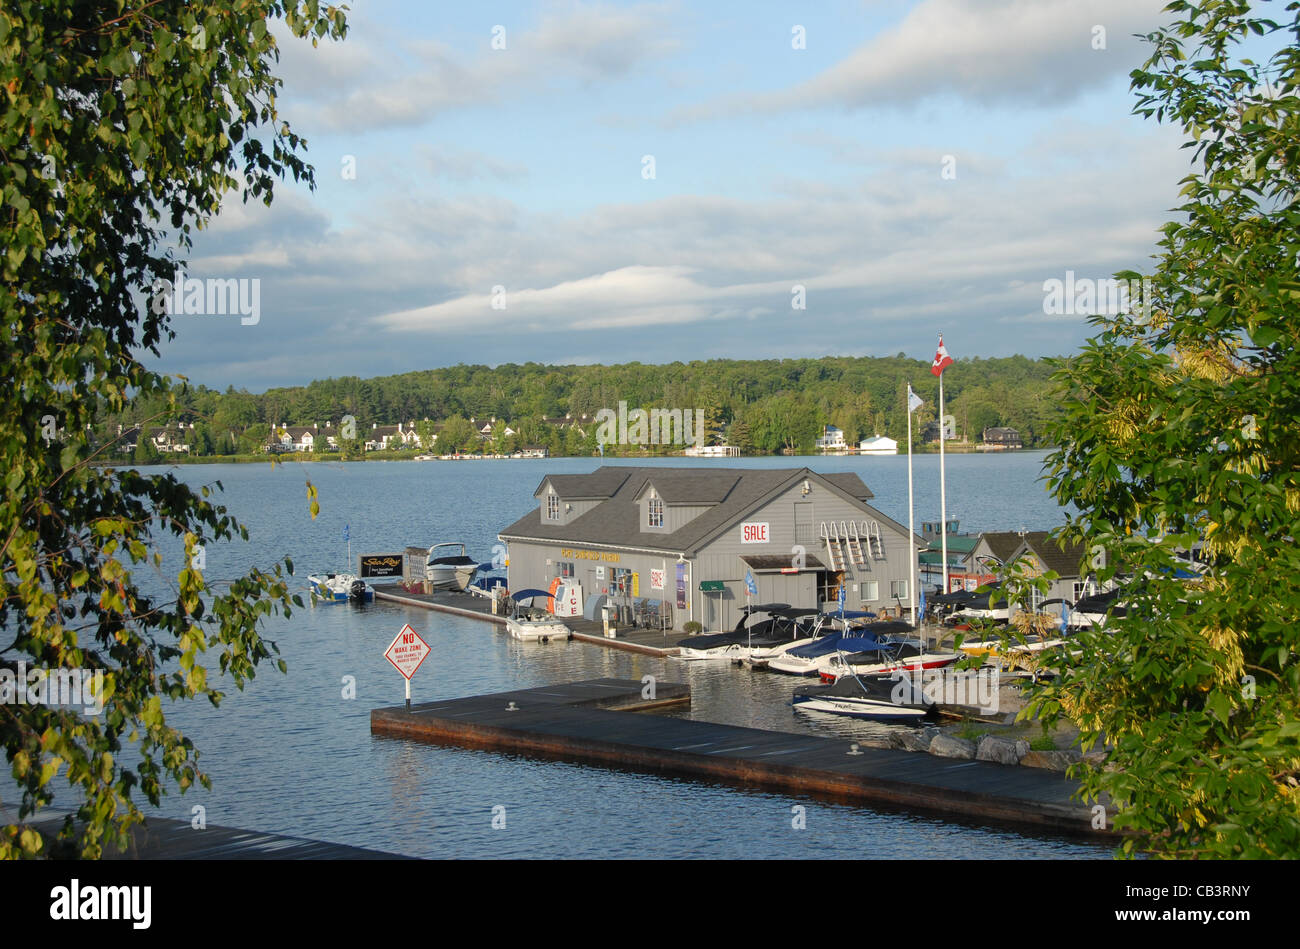 Port Sandfield harbour in the cottage country of Muskoka in Ontario, Canada - Stock Image